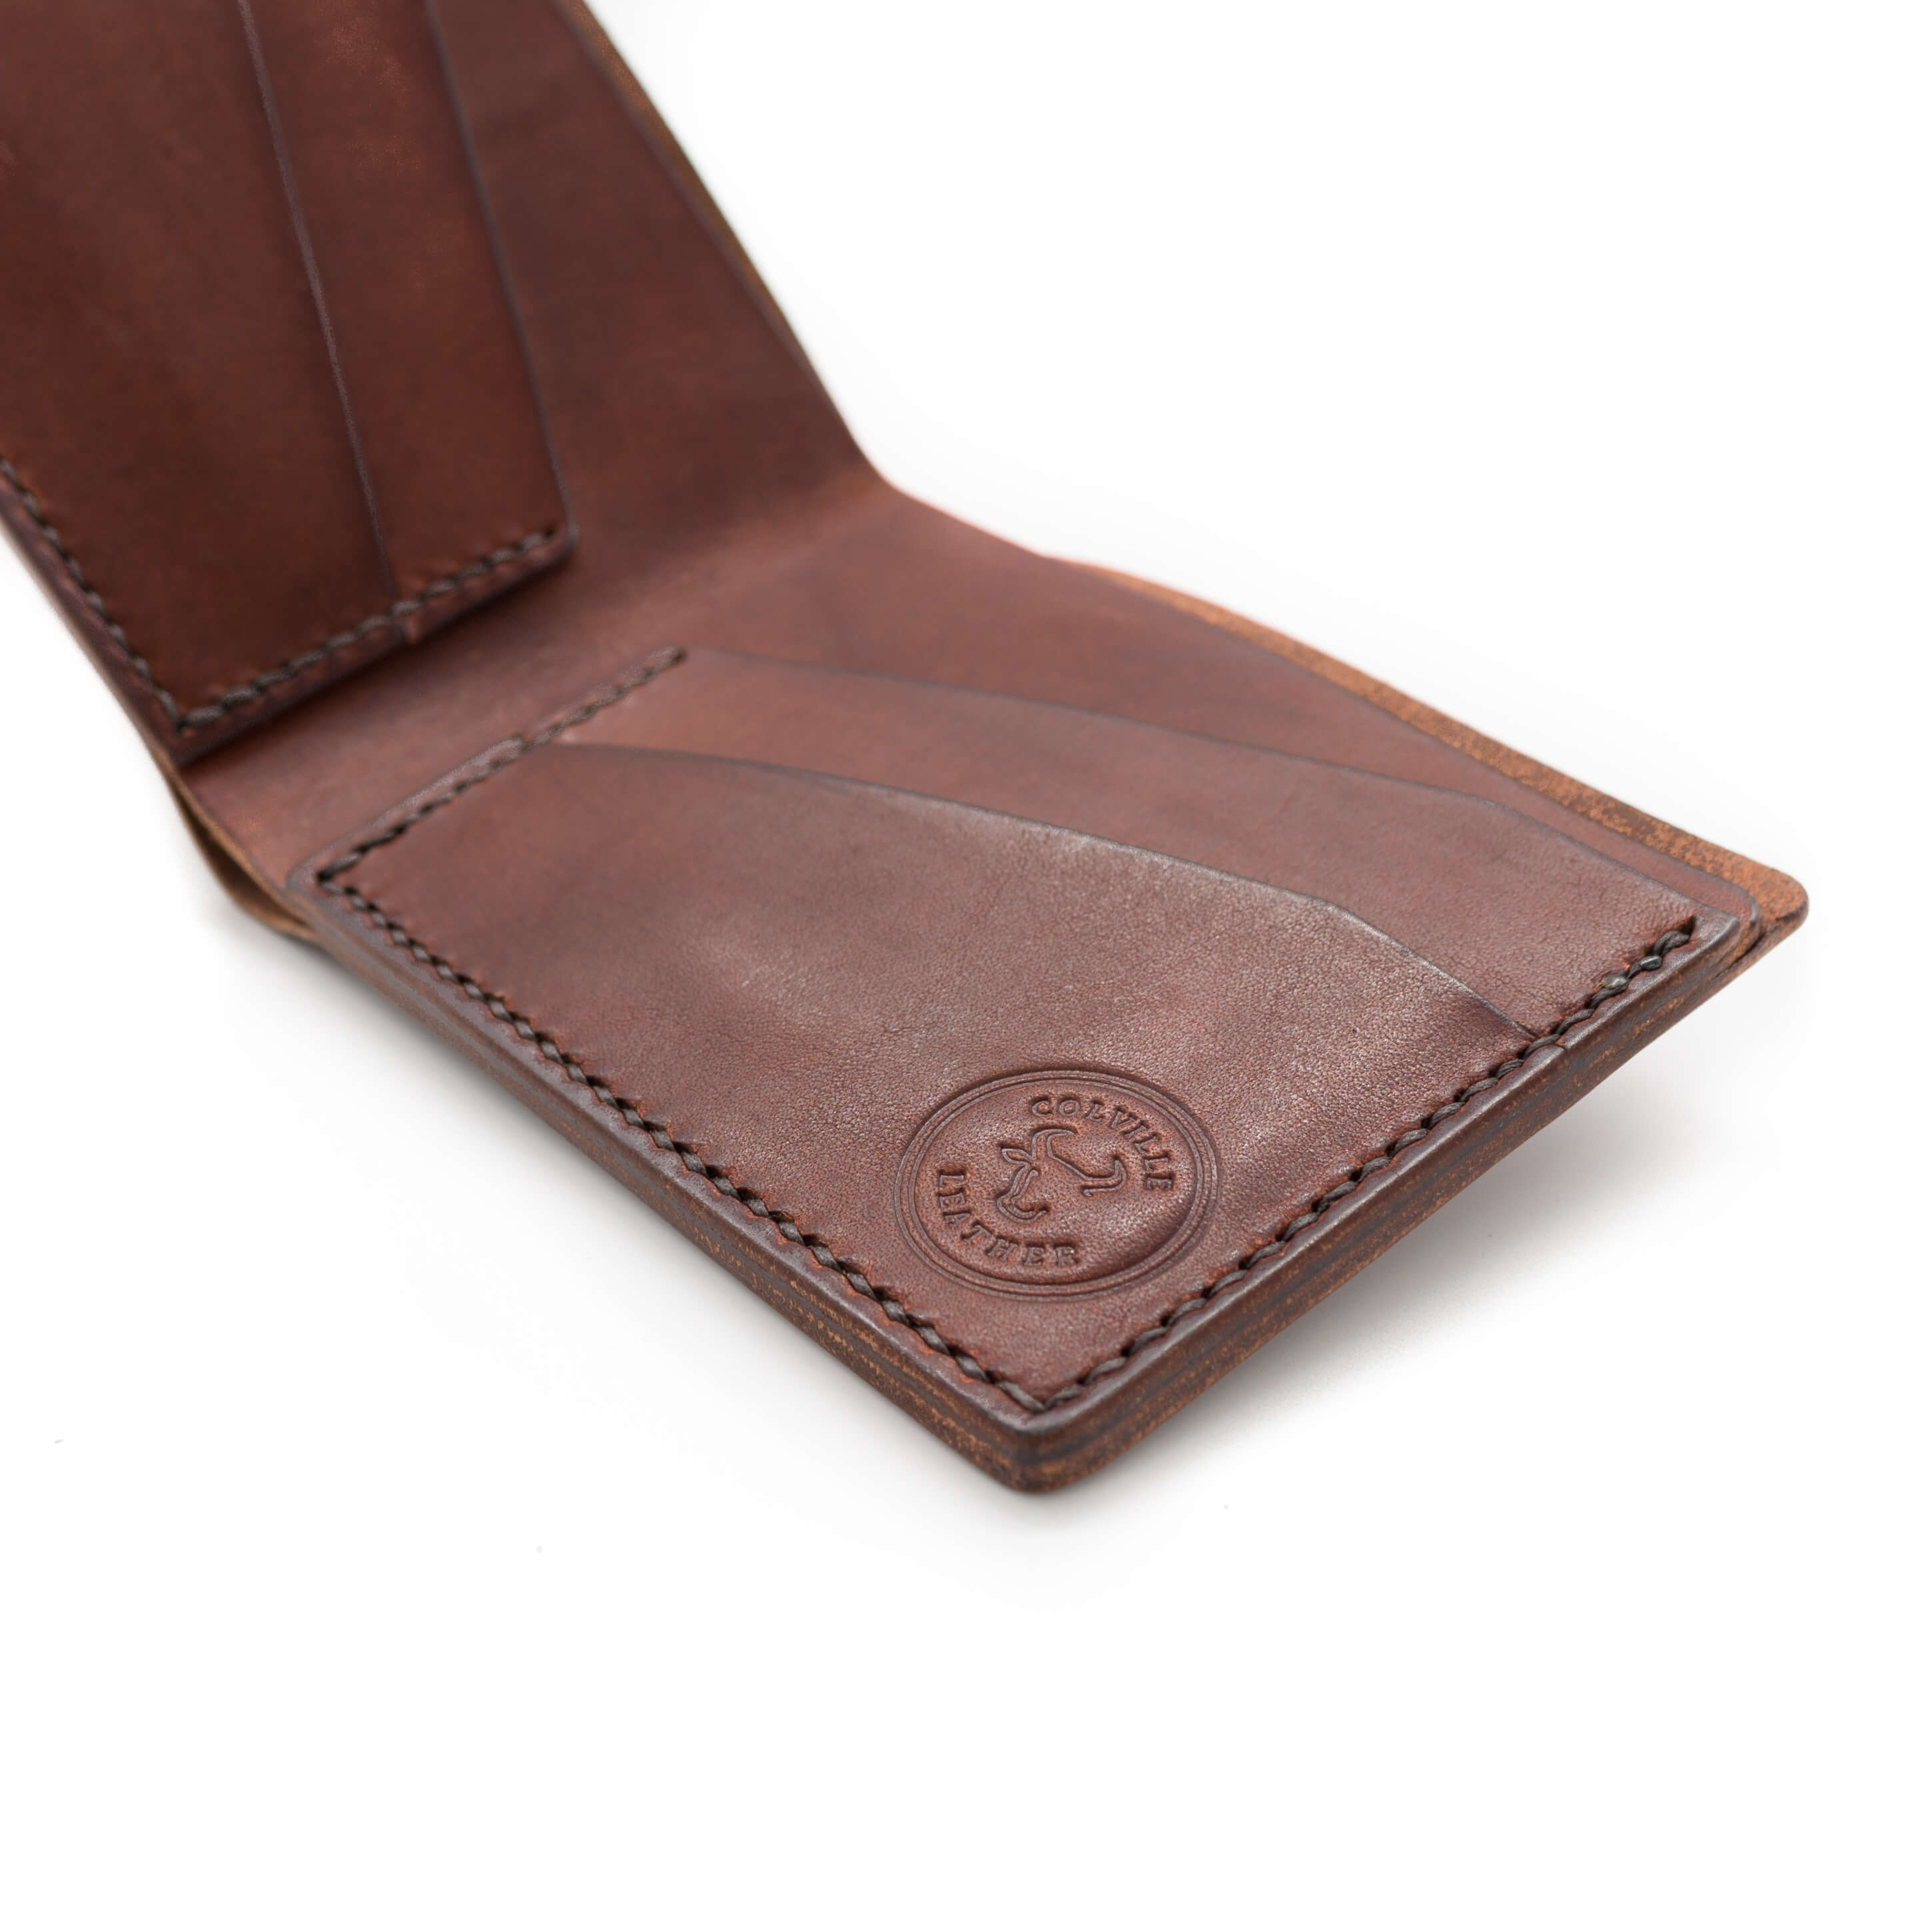 Colville Leather handmade leather bifold wallet